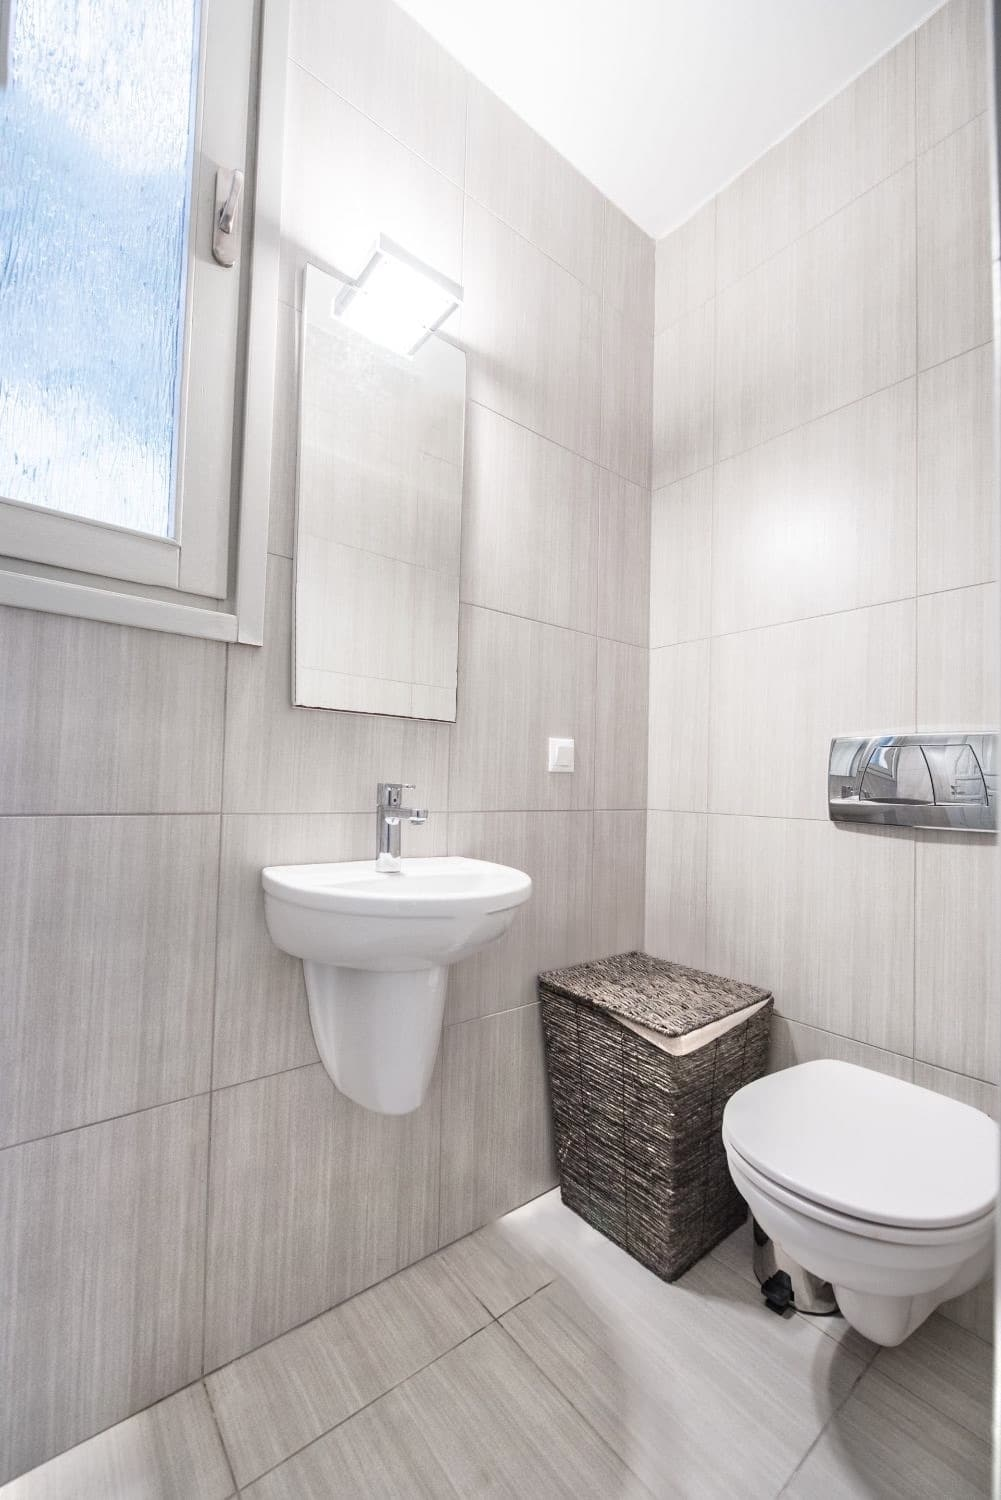 Bathroom with WC